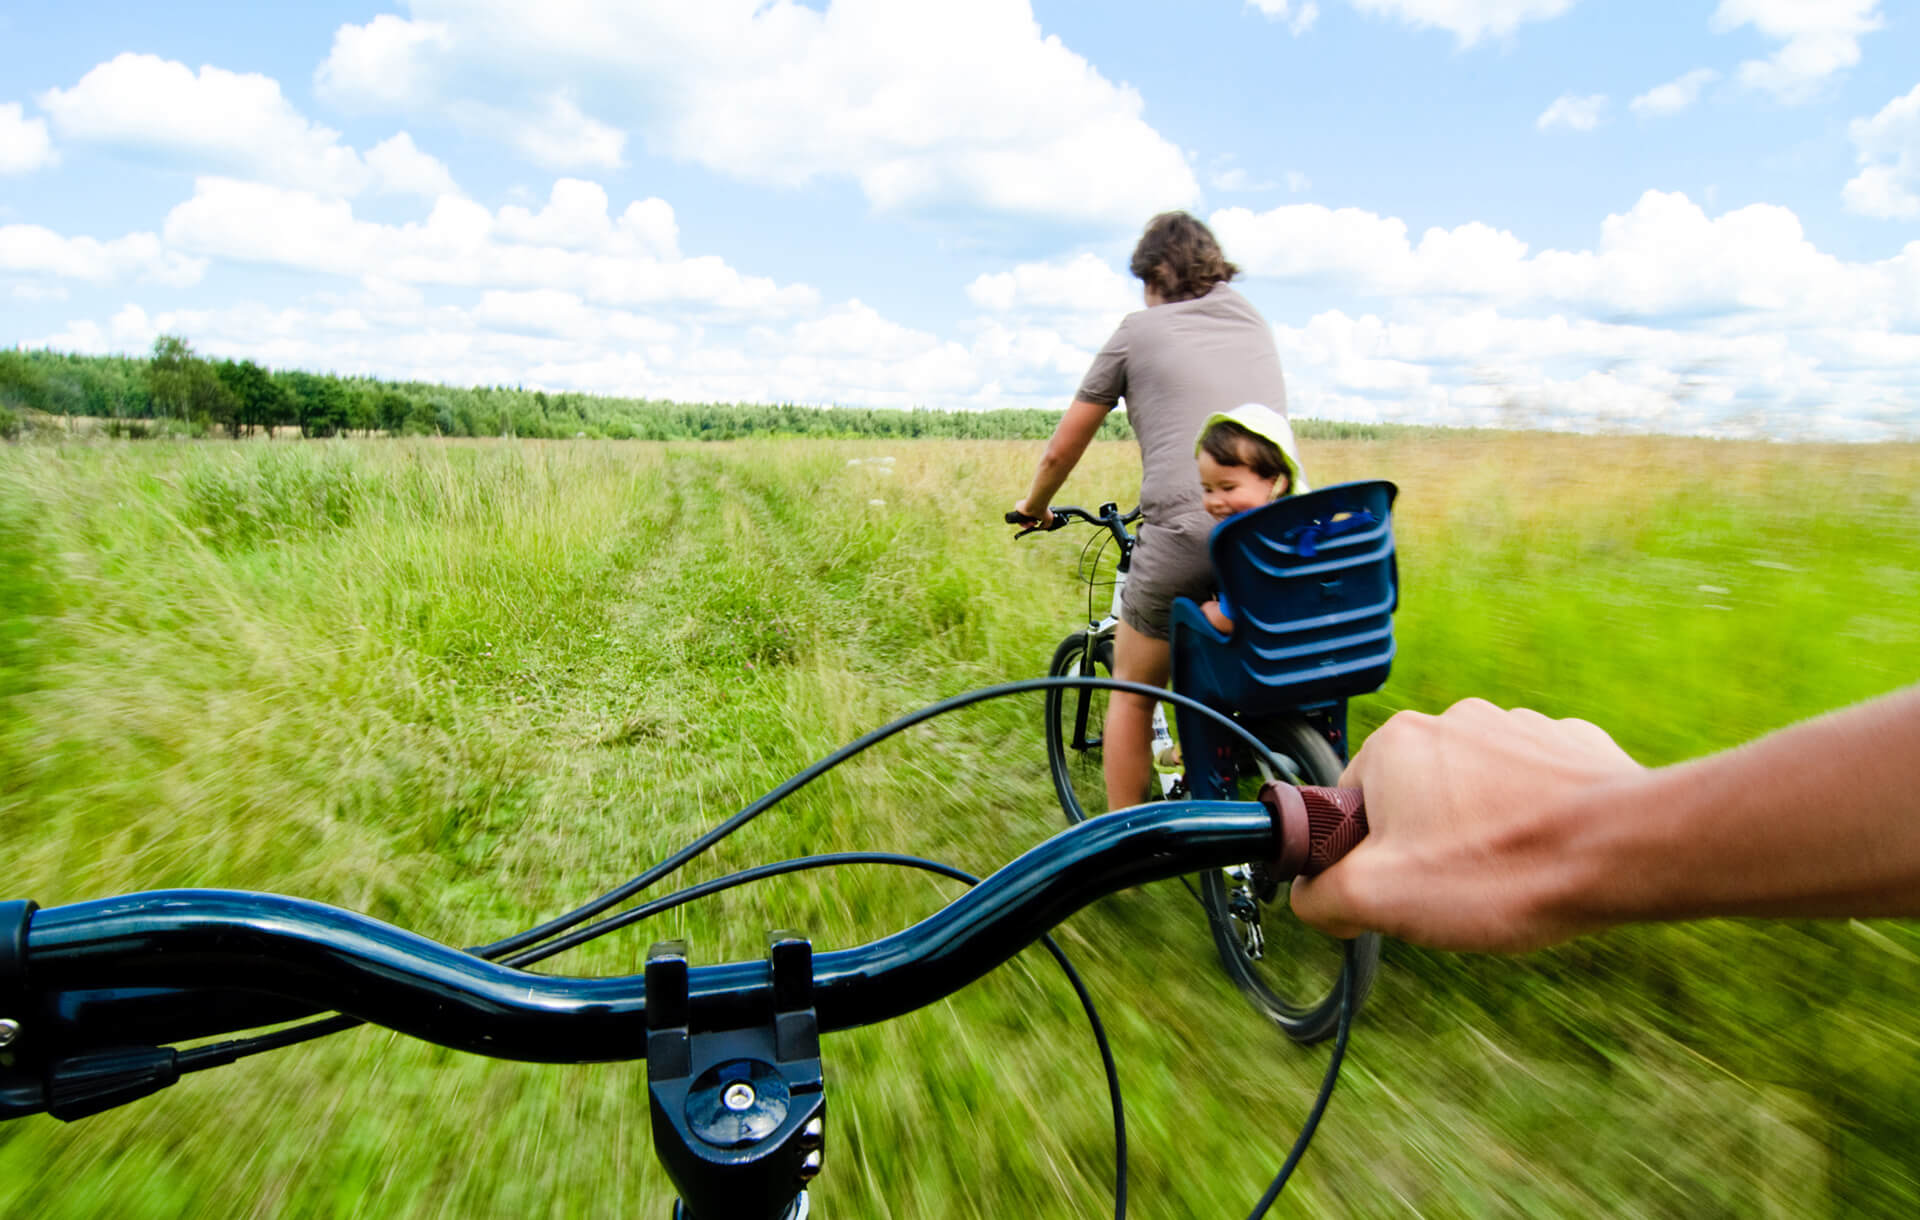 family biking through a green field with baby